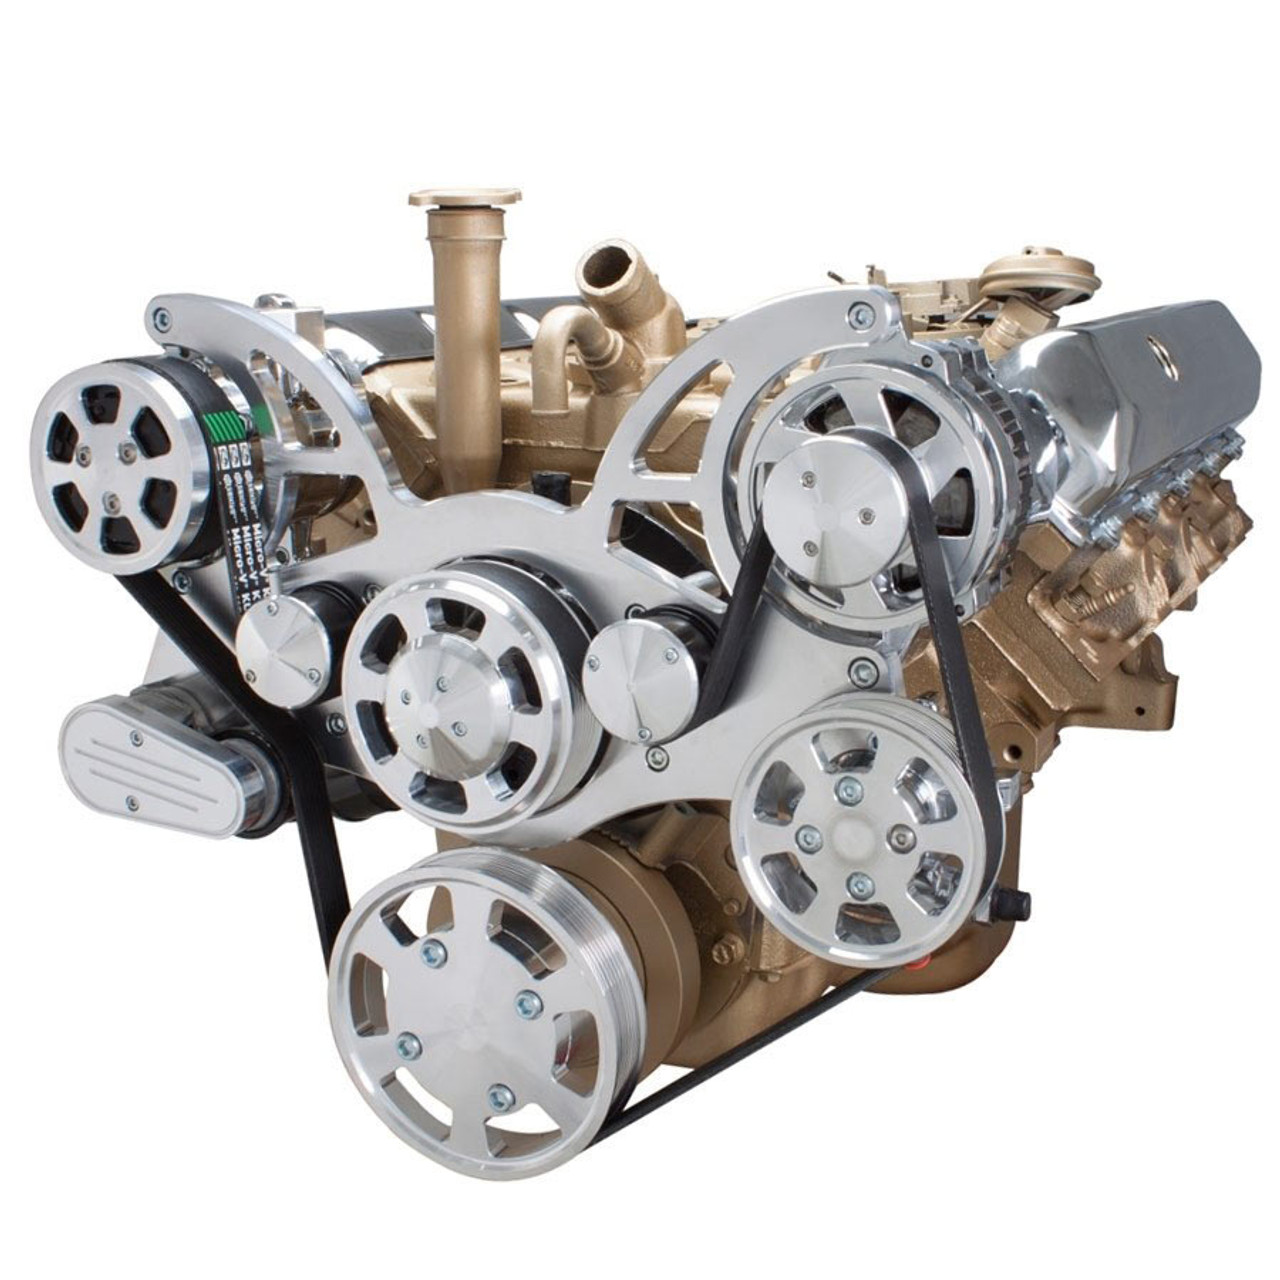 Serpentine System for Oldsmobile 350-455 - AC, Power Steering & Alternator  - All Inclusive